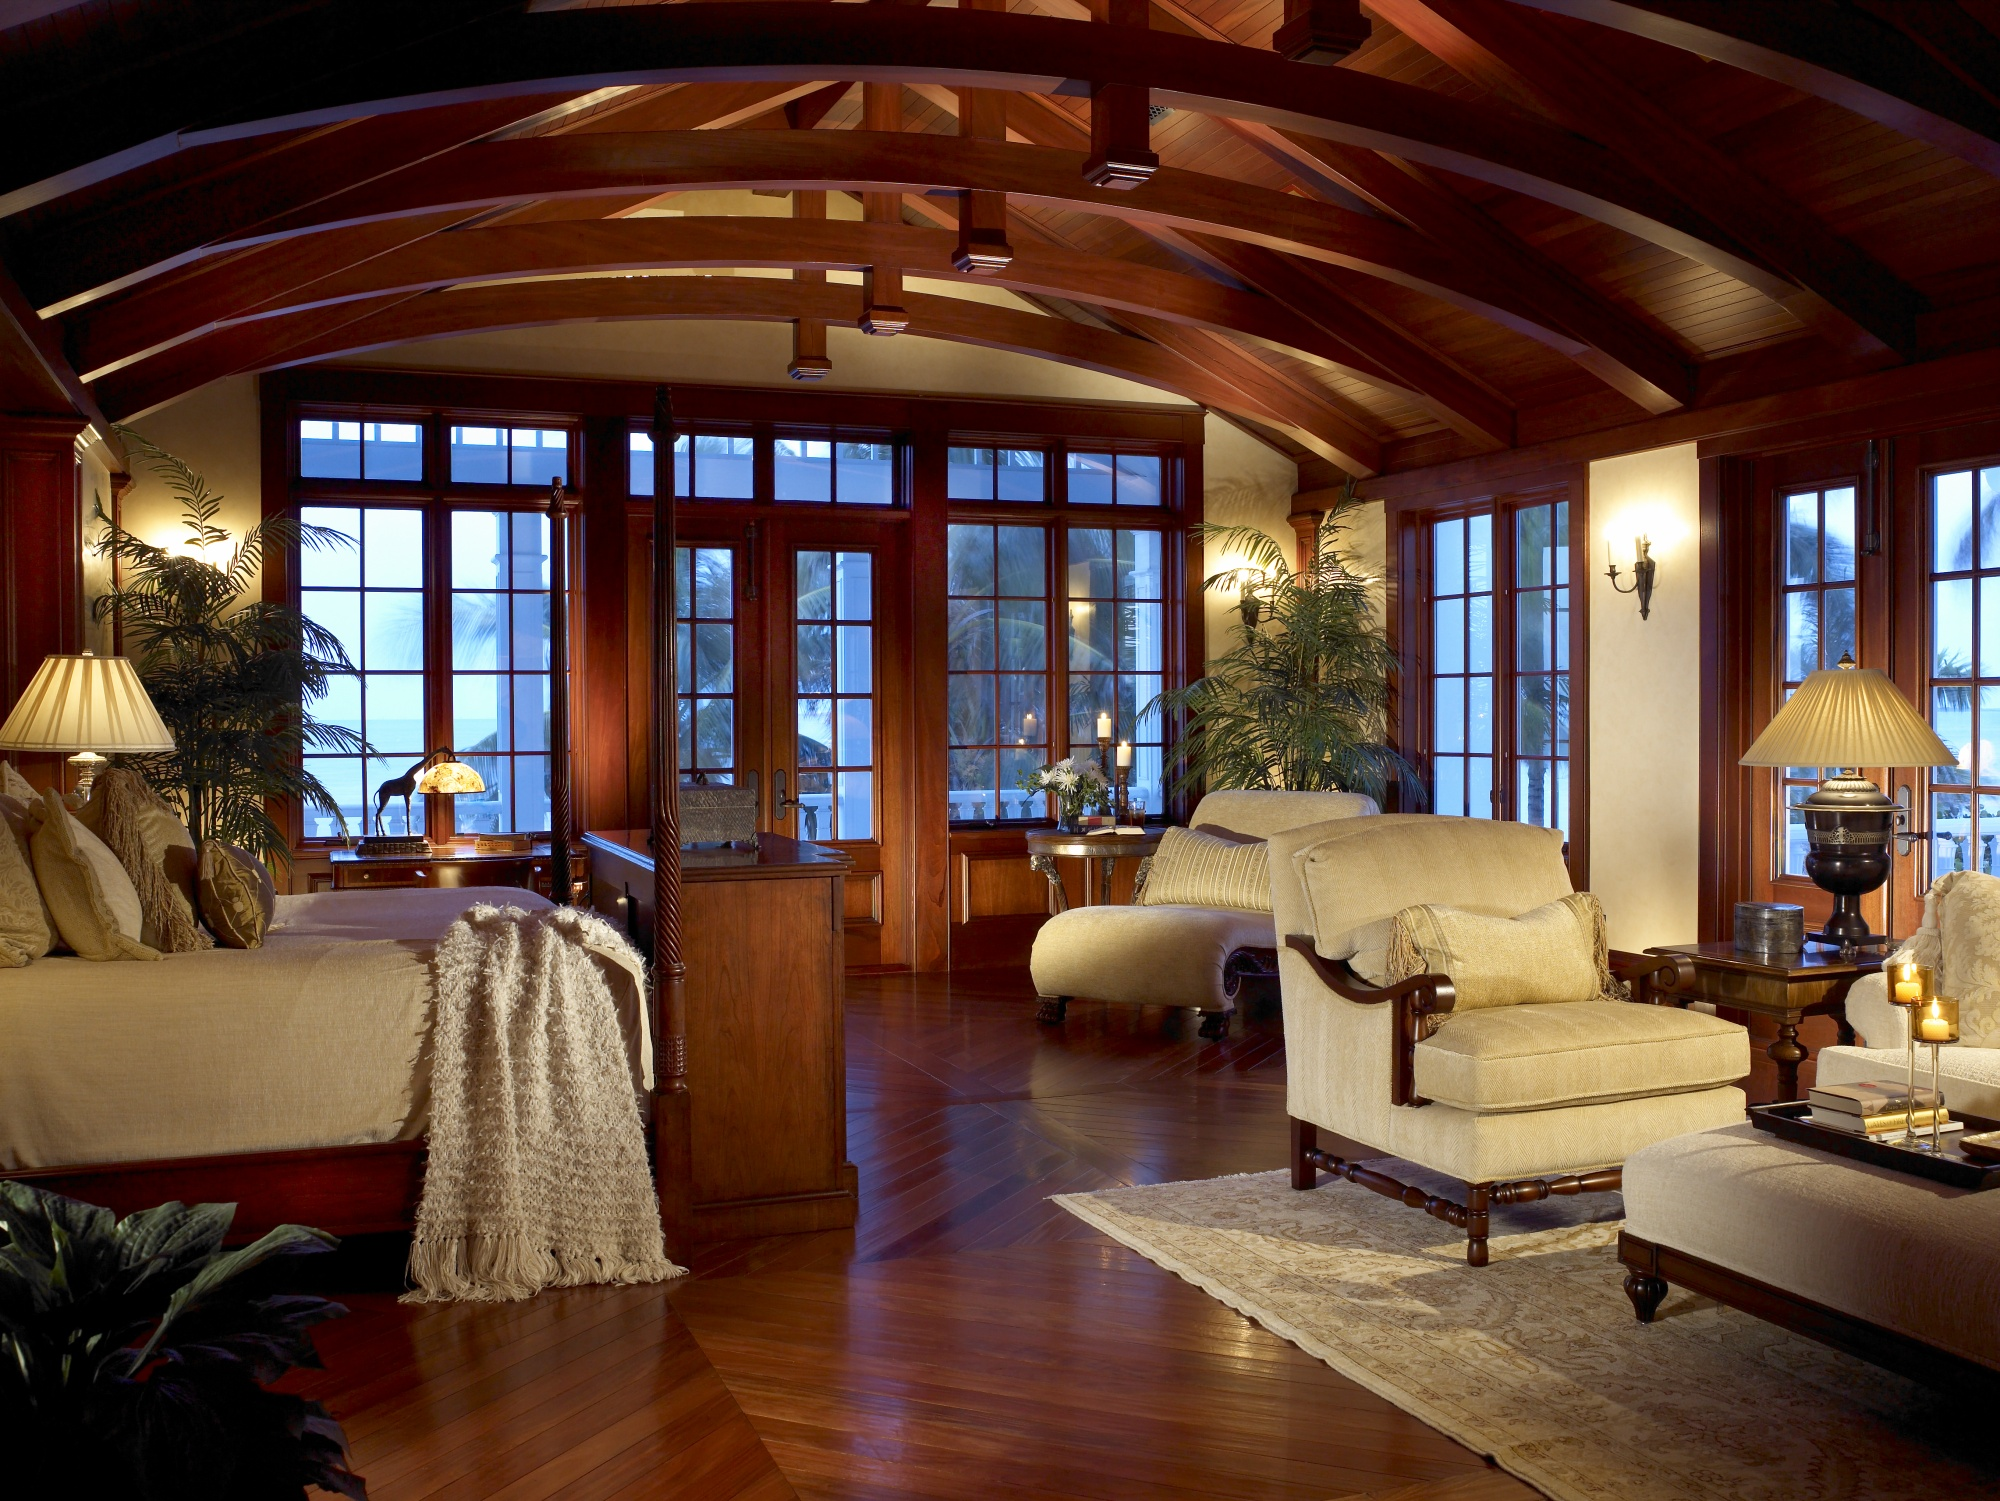 Exposed mahogany beams and venetian plaster walls are featured in the master bedroom.